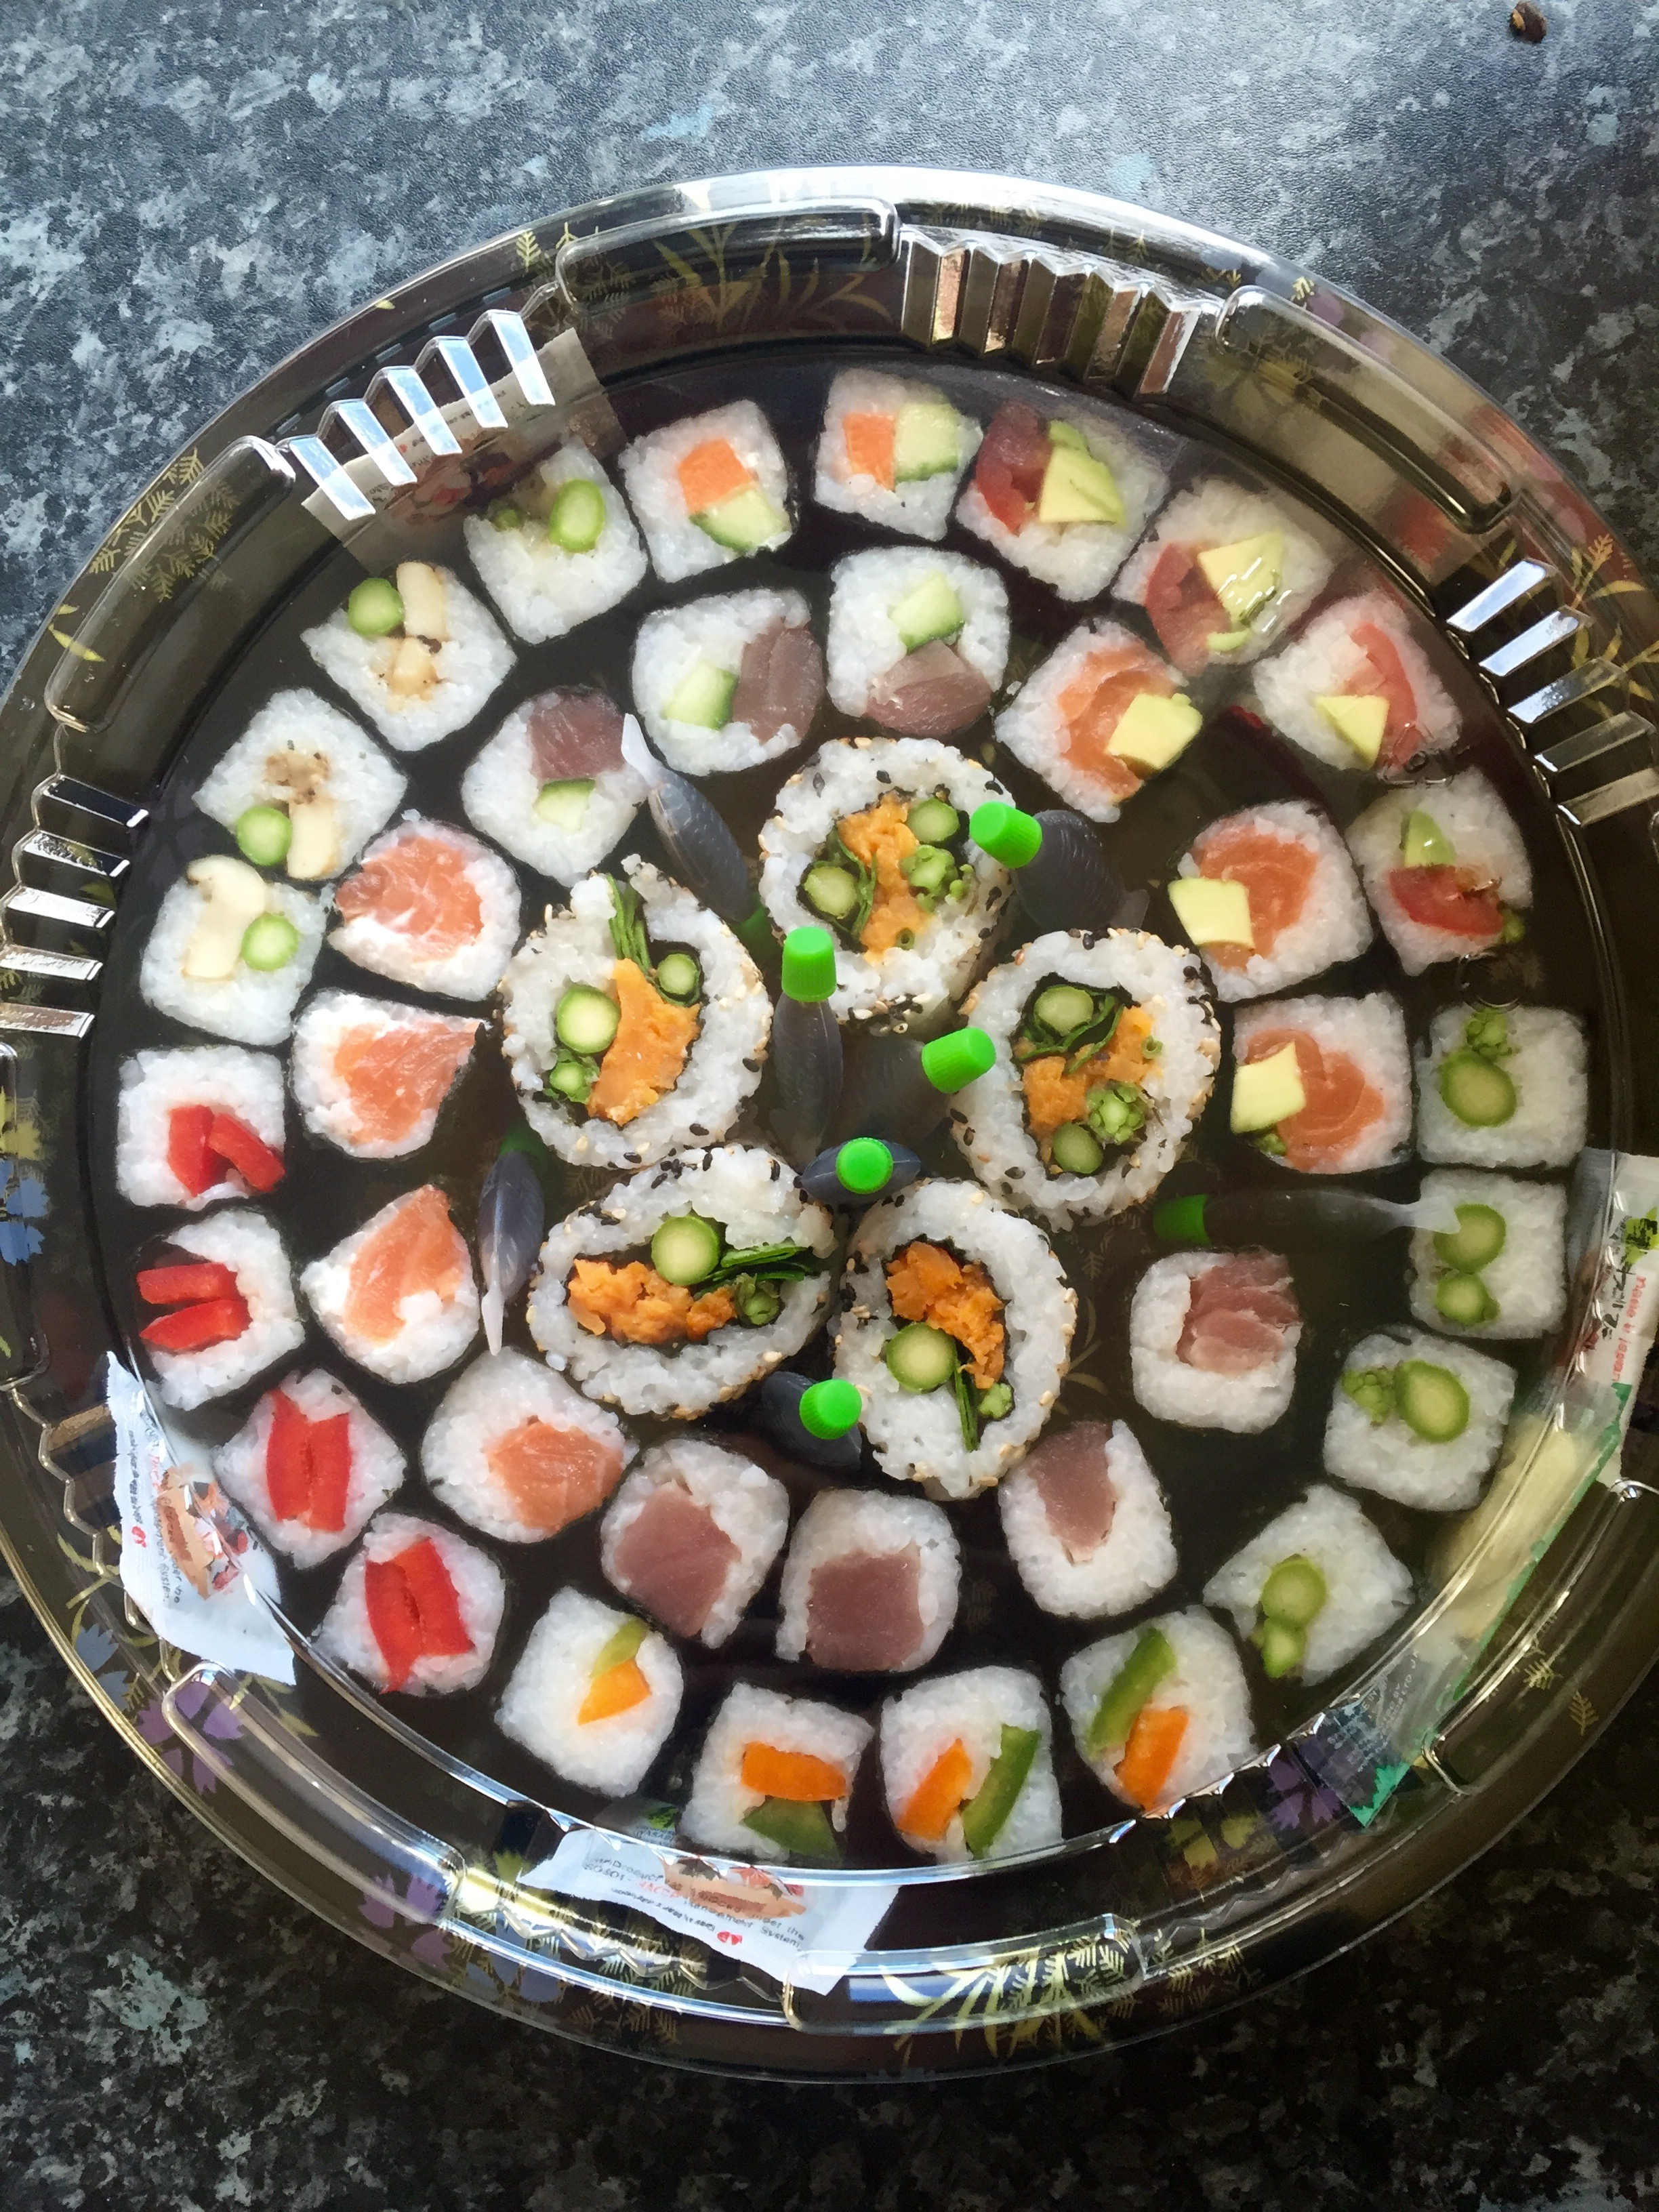 THE CLASSIC MIXED SUSHI PLATTER - £25   Includes a mix of maki rolls & inside out rolls filled with box fish and vegetarian options.